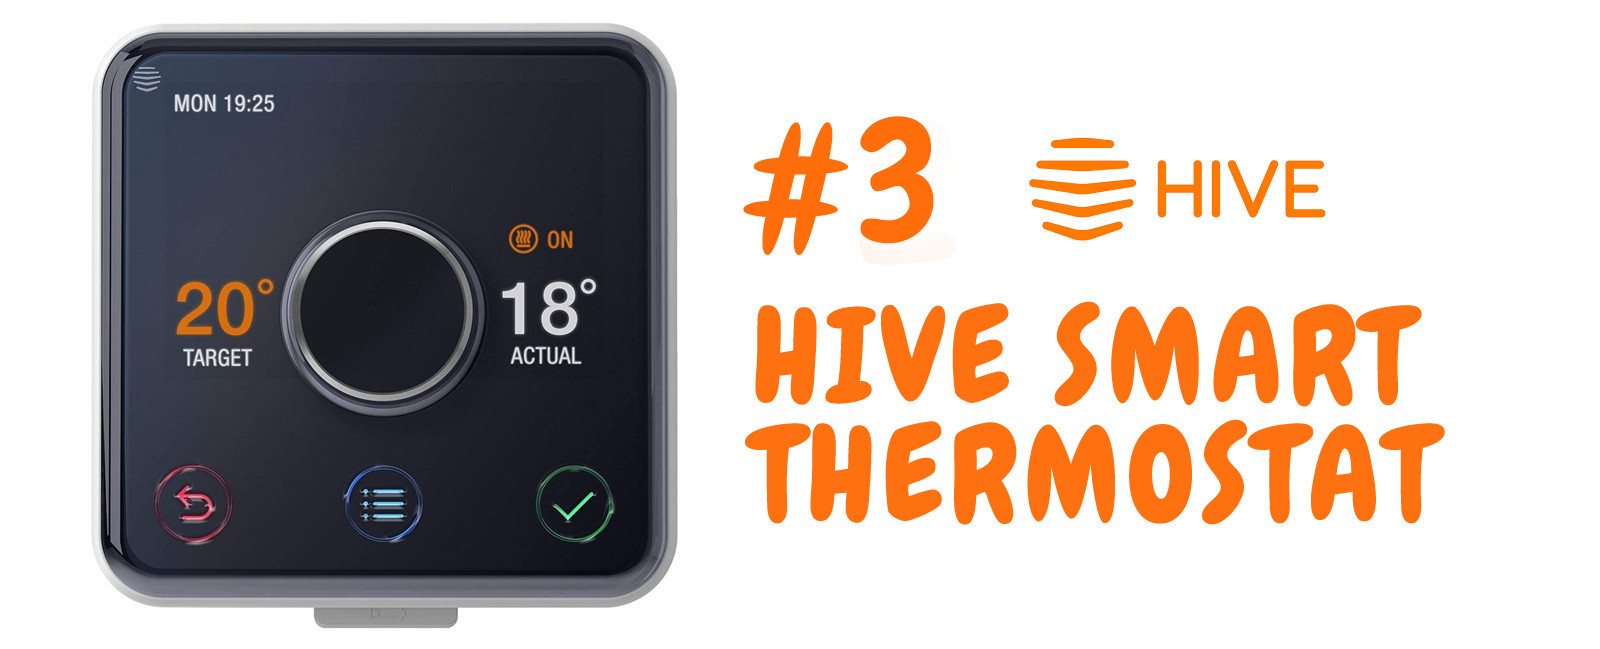 Hive Smart Thermostat